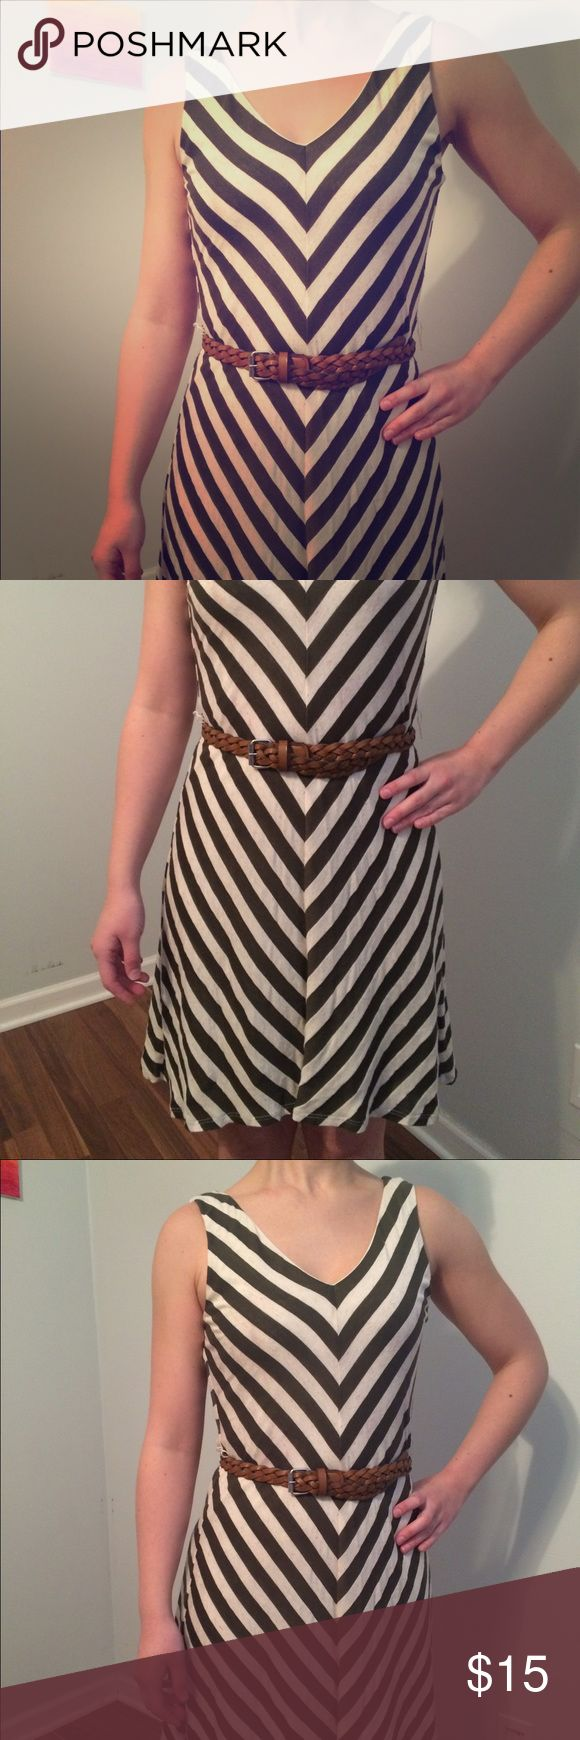 Chevron Print High-Low Dress Cream and olive chevron pattern, asymmetrical high-low hemline. Belt not included. As U Wish Dresses High Low